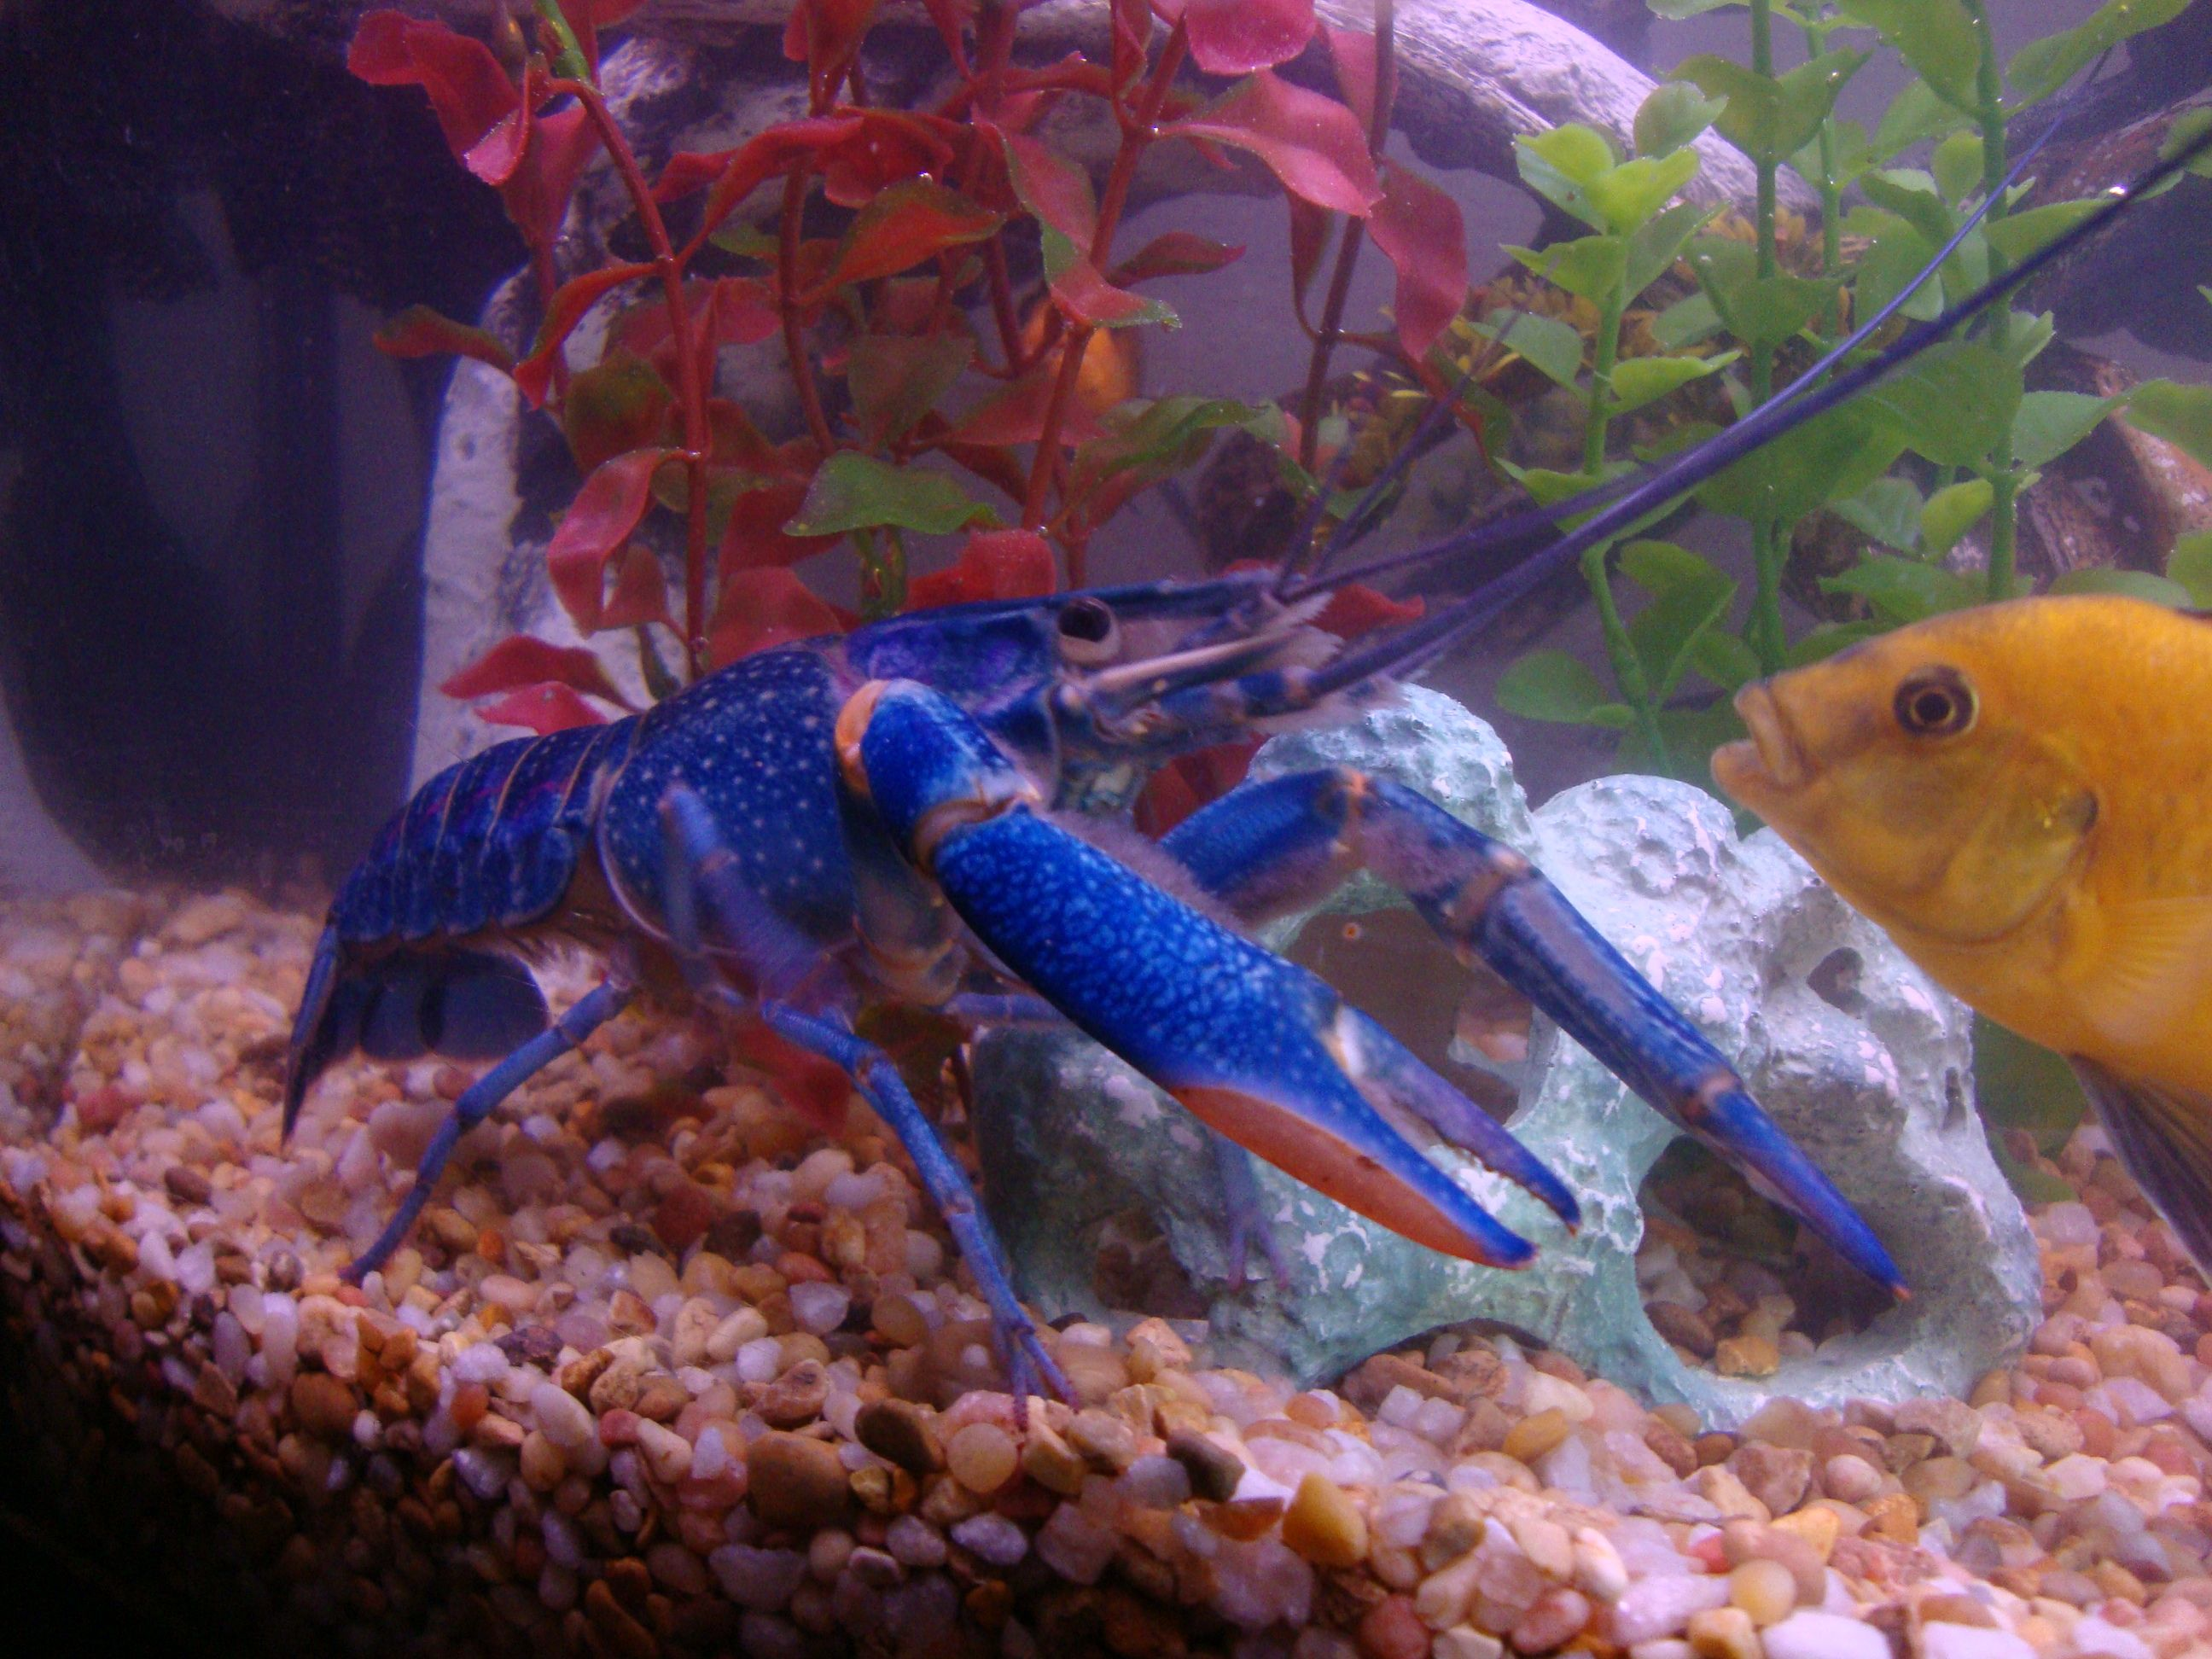 Blue Lobster You Can Keep These In A Fresh Water Aquarium I Also Read They Can Climb So Keep A Lid On That Aquarium Freshwater Lobster Fish Pet Fish Tank